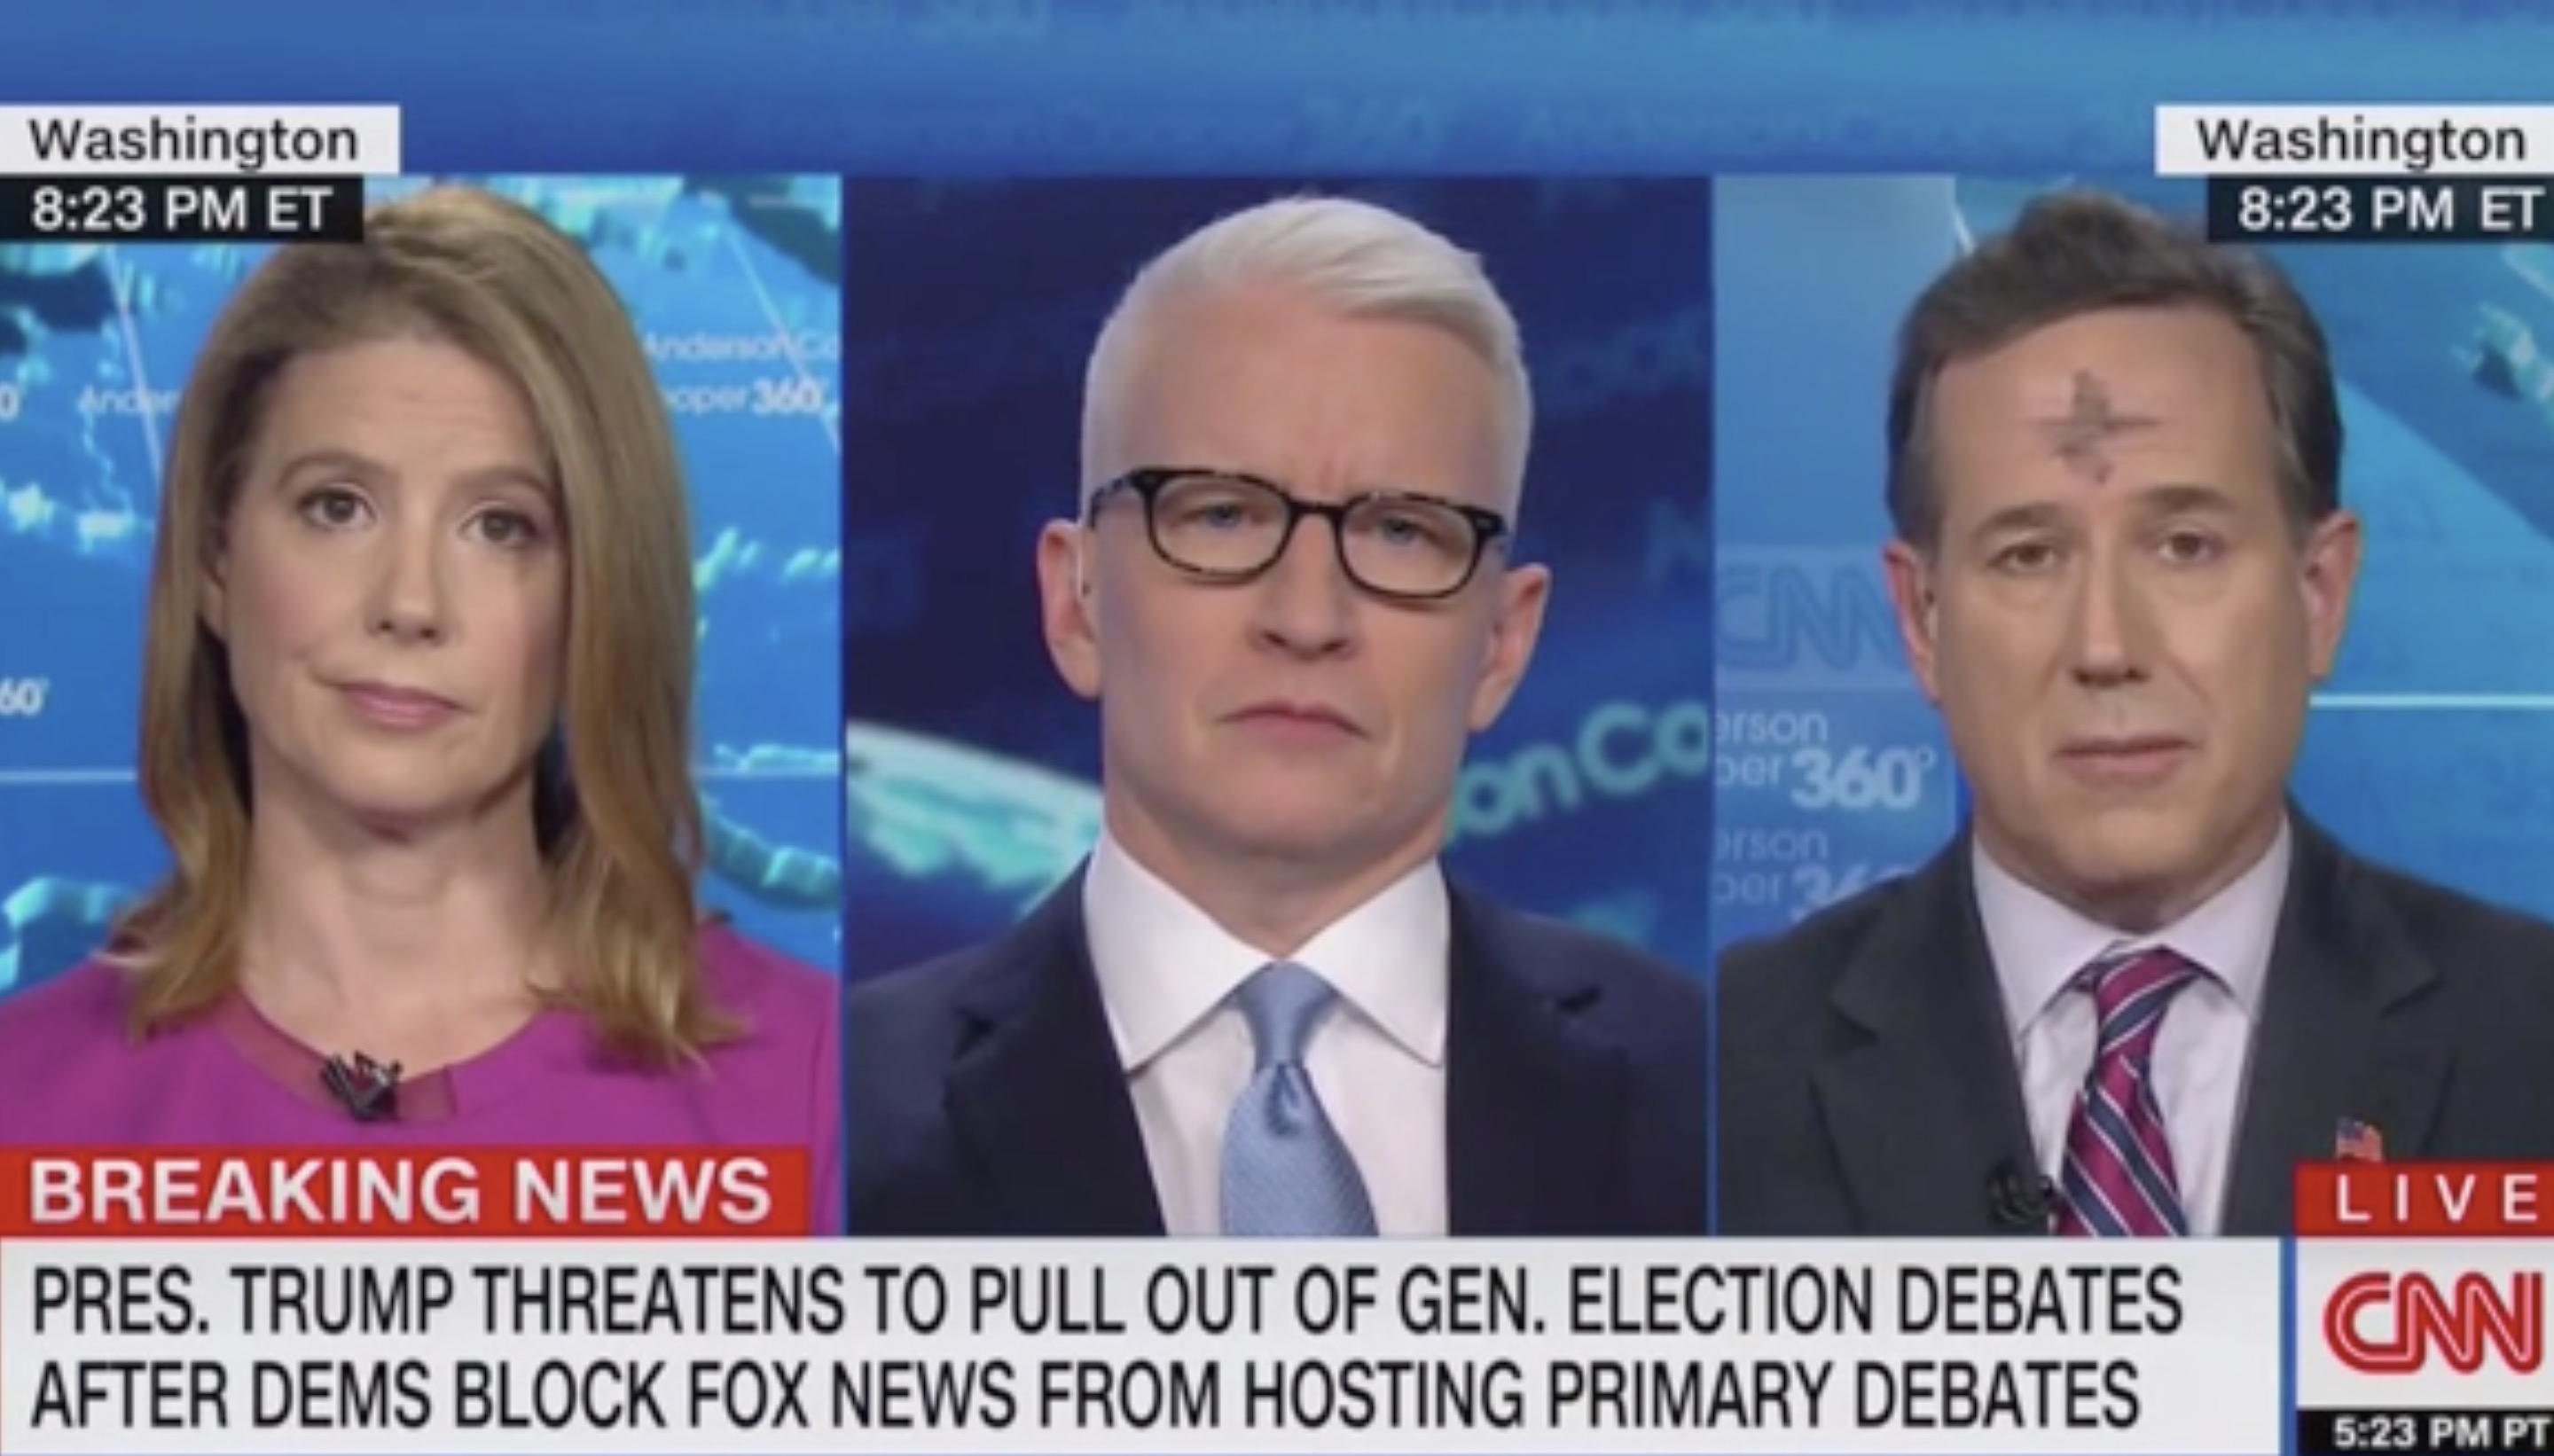 Rick Santorum Calls Out DNC For Refusing to Give Fox News a Dem Primary Debate: 'What Are They Afraid Of?'